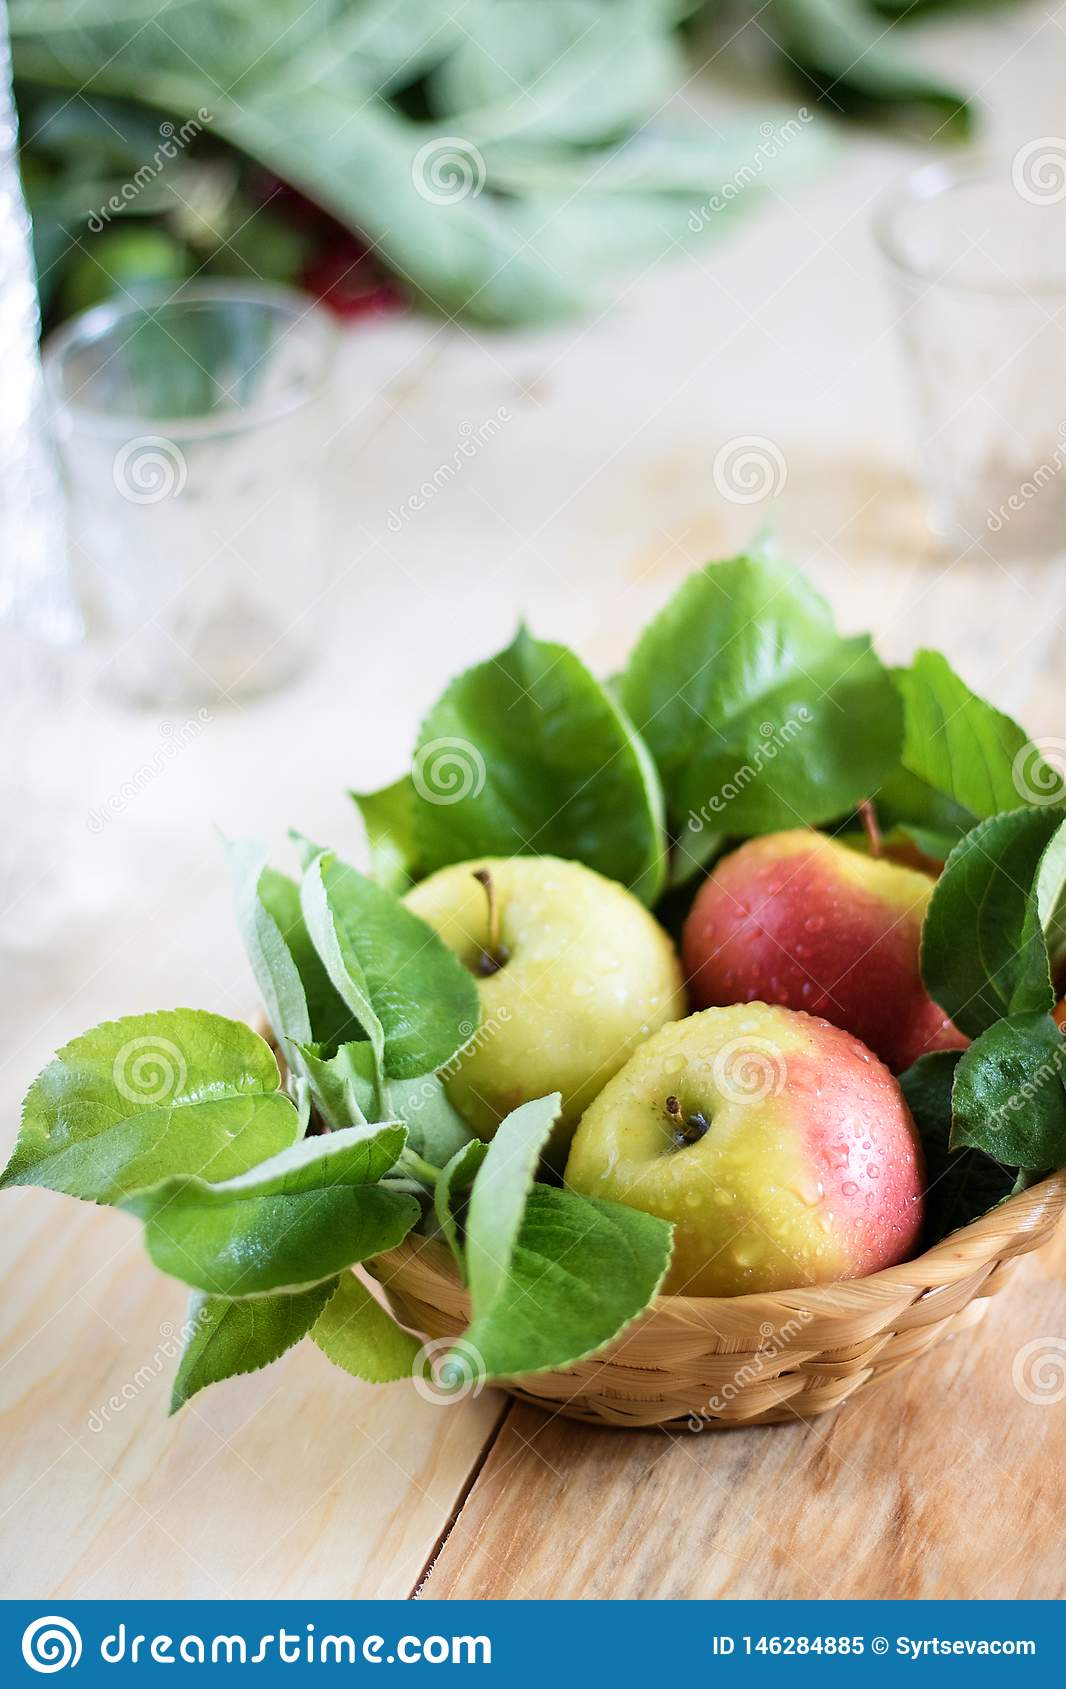 Still life of green apples in a basket on the table large flat